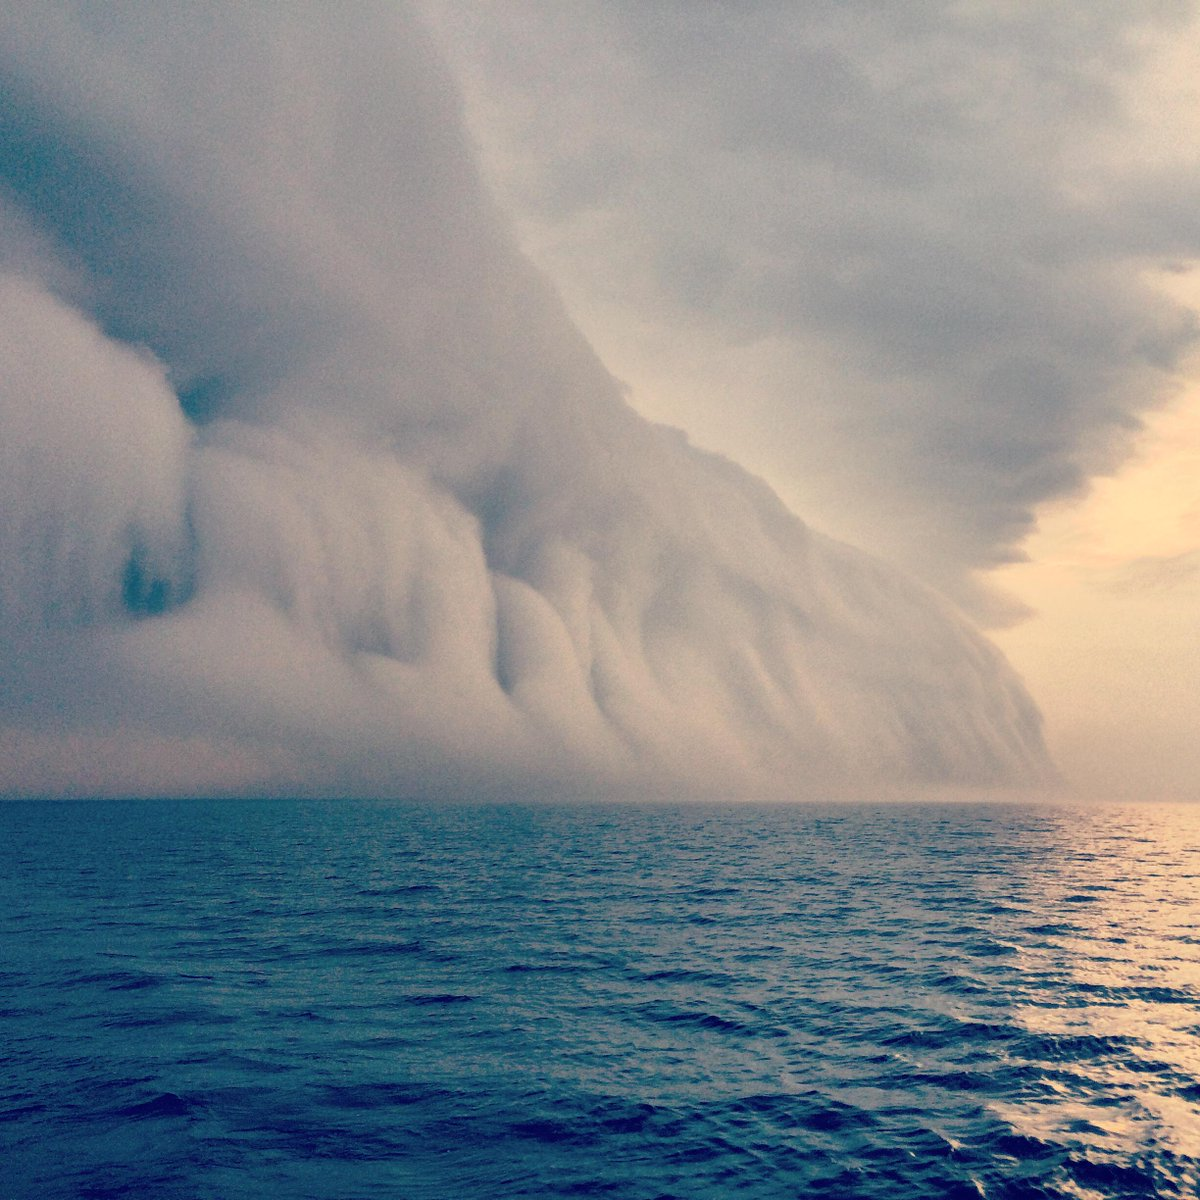 Amazing pic from Kris Kralka. Cloud formed right on Georgian Bay when cool rain clashed with hot air this past wknd. http://t.co/TkwN3oIiju